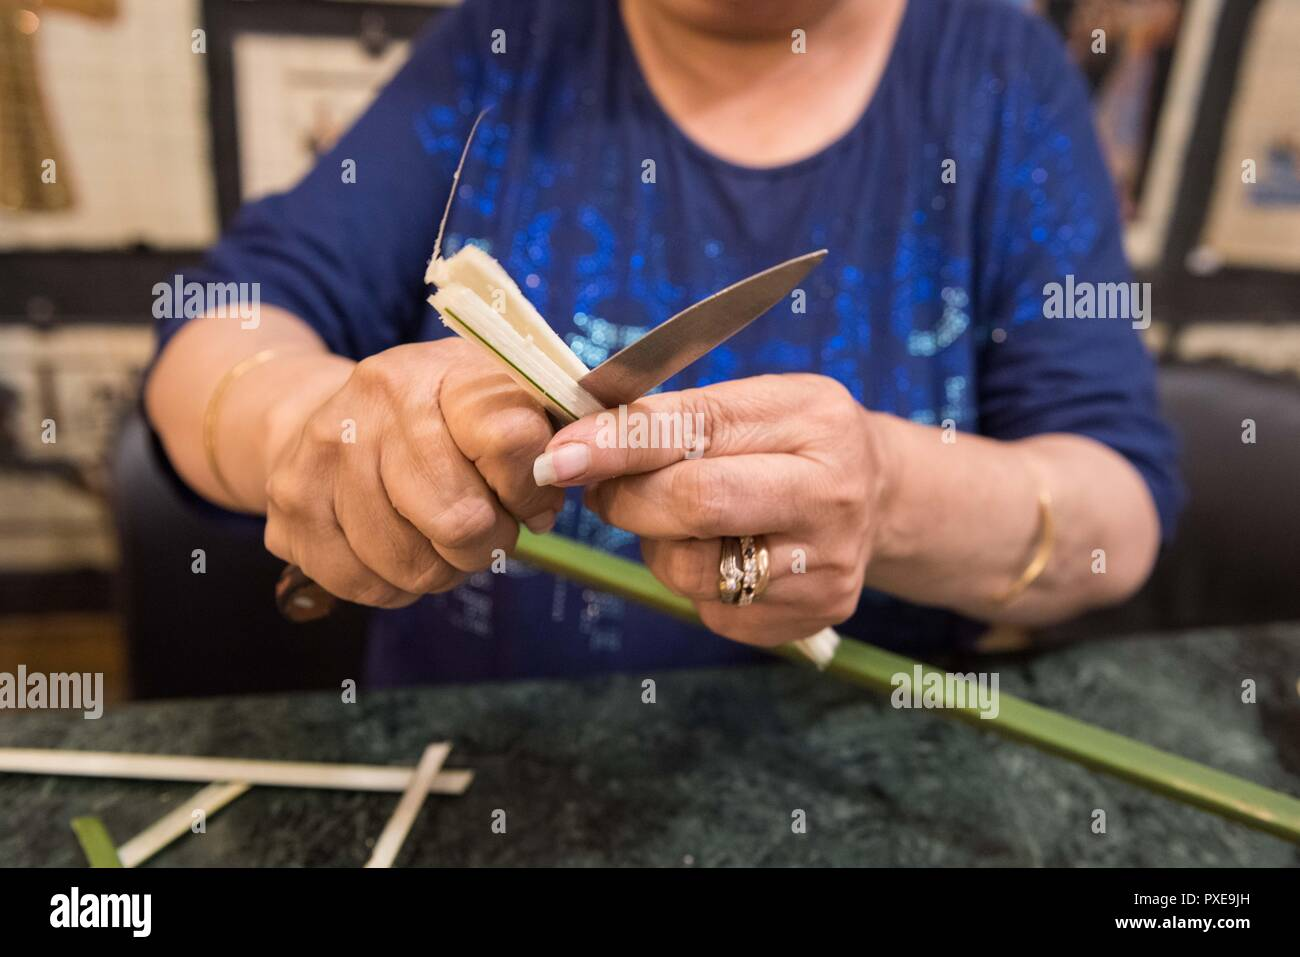 Giza, Egypt. 20th Oct, 2018. A shop assistant peels the stem of a papyrus plant during a demonstration of making papyrus at a souvenir shop in Giza, Egypt, on Oct. 20, 2018. Made from papyrus plant stems, the papyrus was used for writing and drawing on by ancient Egyptians thousands years ago. Nowadays, with the ancient Egyptian writings and Pharaonic drawings, papyrus has always been an interesting souvenir bought by tourists in Egypt. Credit: Meng Tao/Xinhua/Alamy Live News - Stock Image